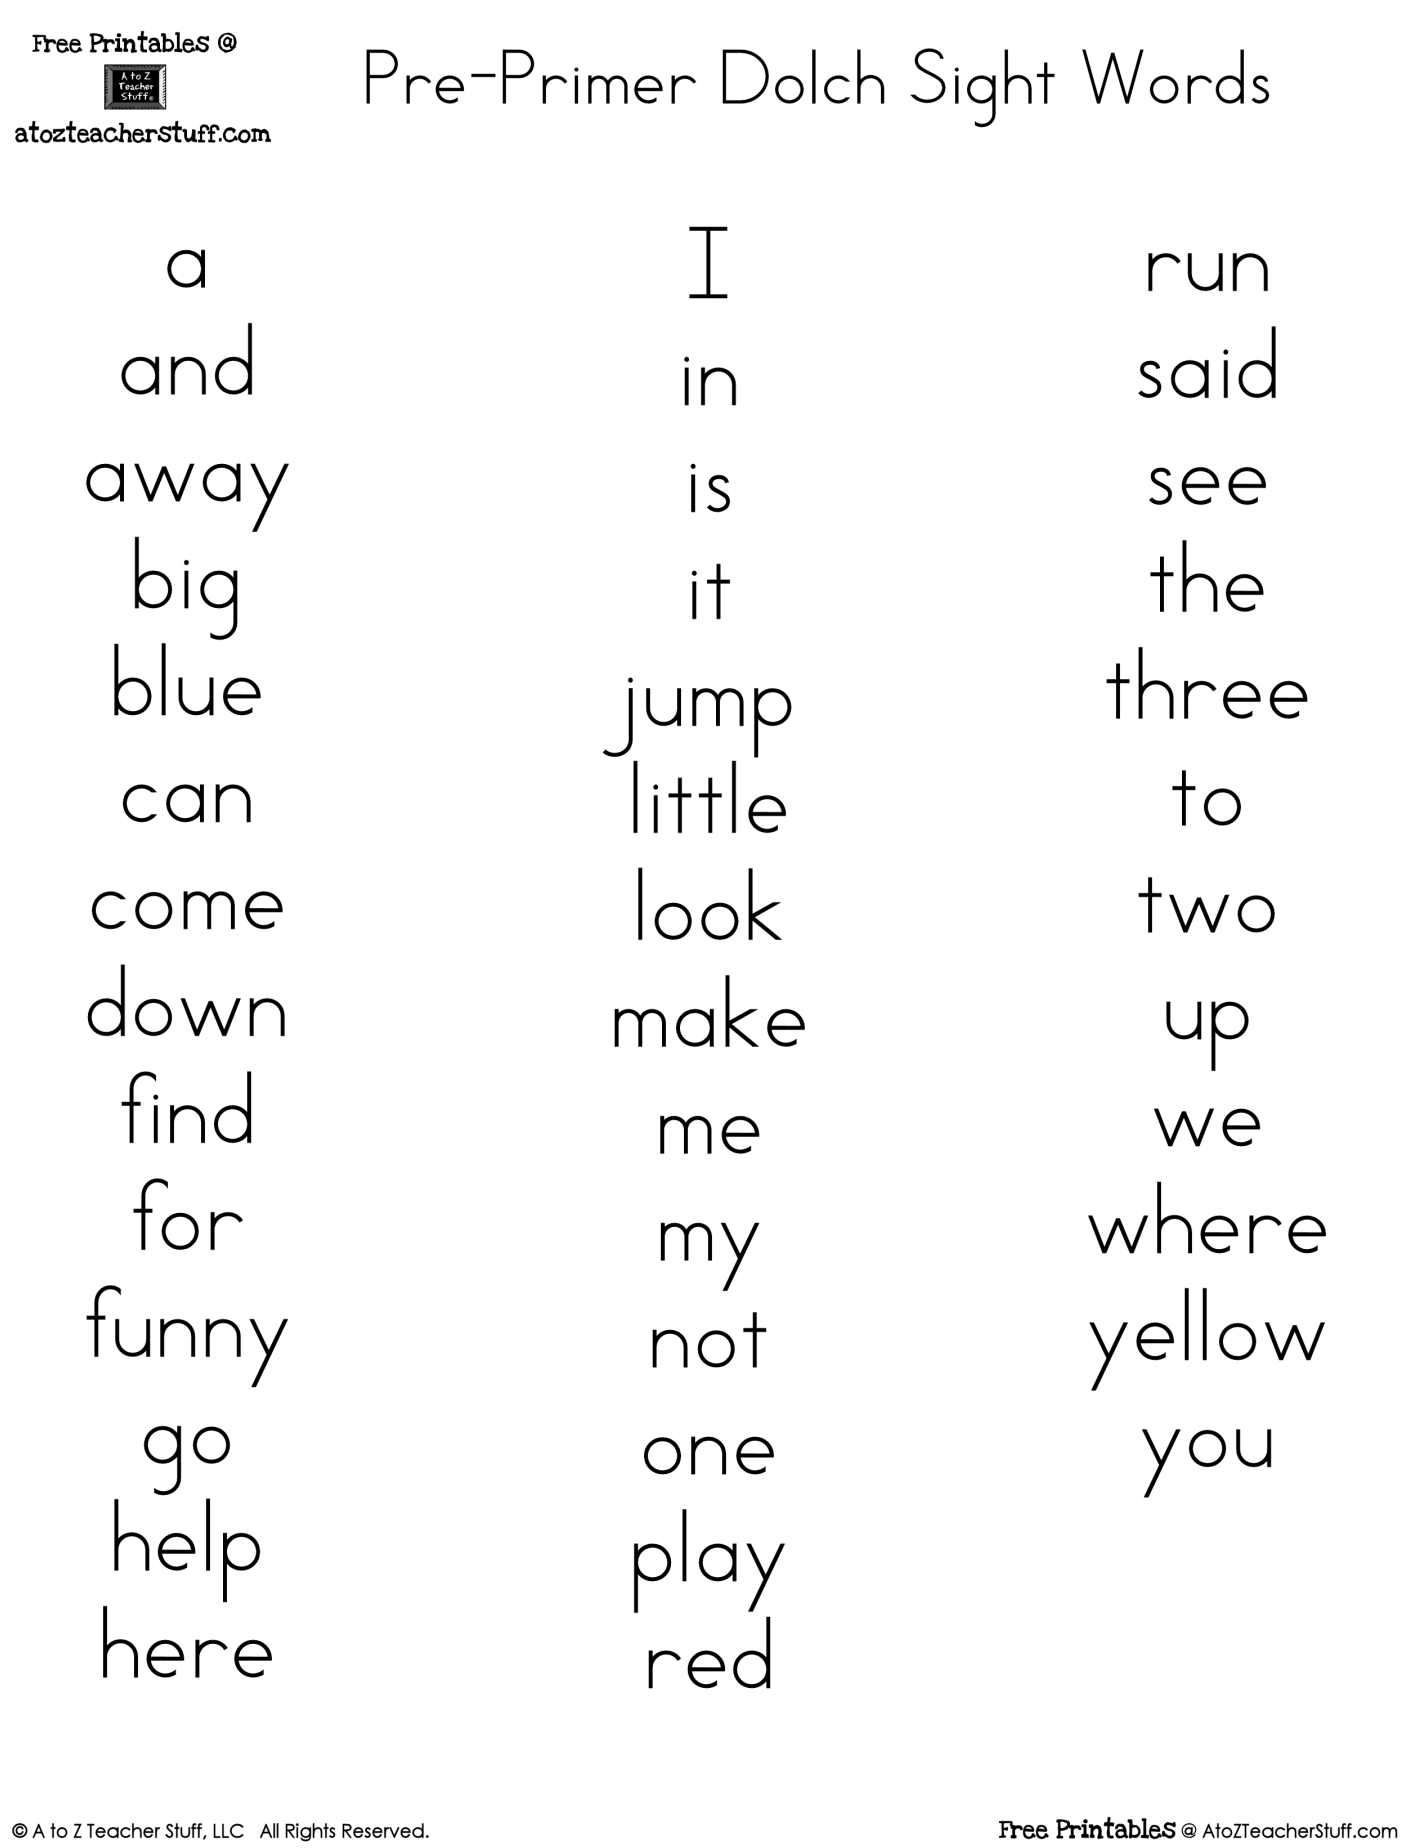 Pre-Primer Dolch Sight Words FREE Printables